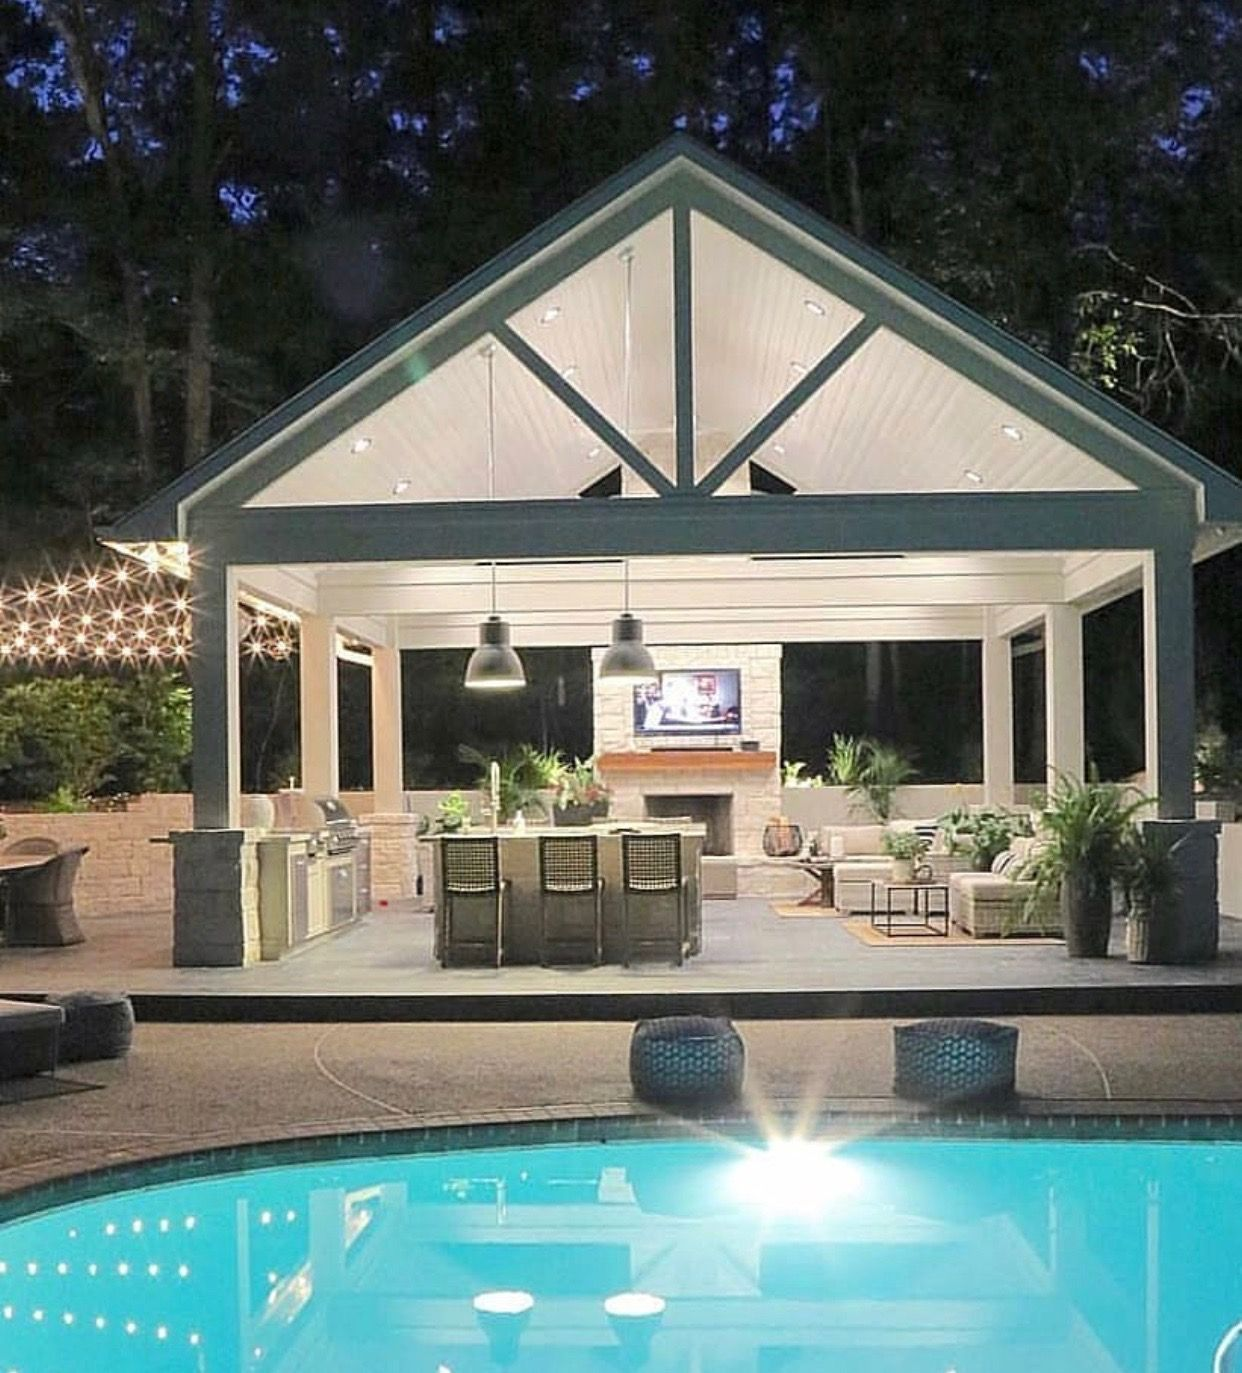 13 Clever Designs Of How To Make Backyard Pool House Ideas Tavernierspa Modern Design In 2020 Pool Houses Outdoor Remodel Backyard Pool